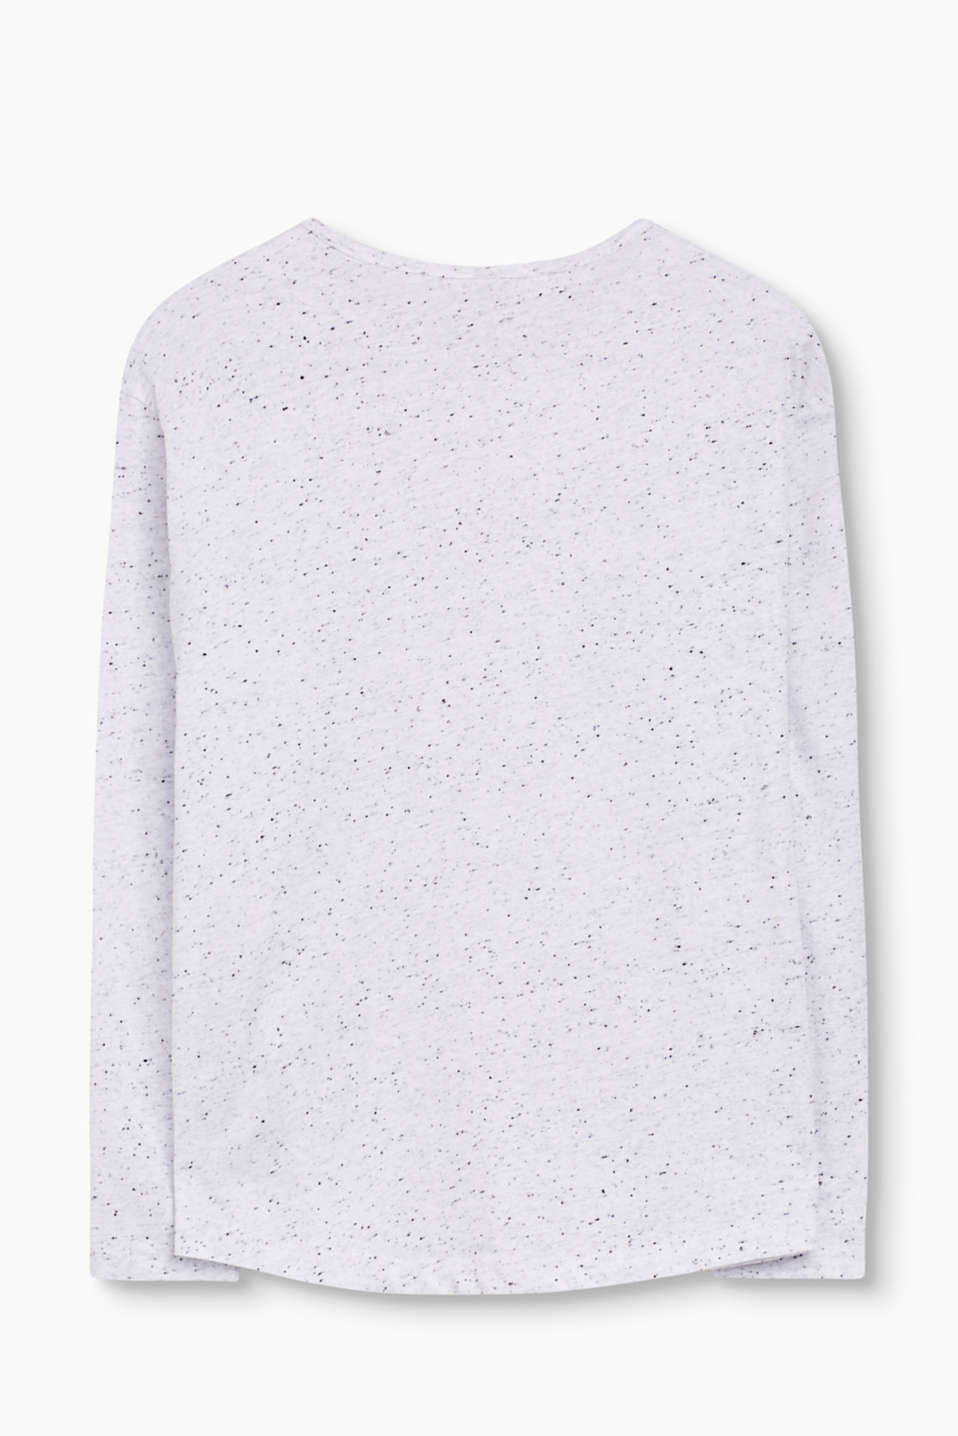 Bobbly glitter print cotton tee